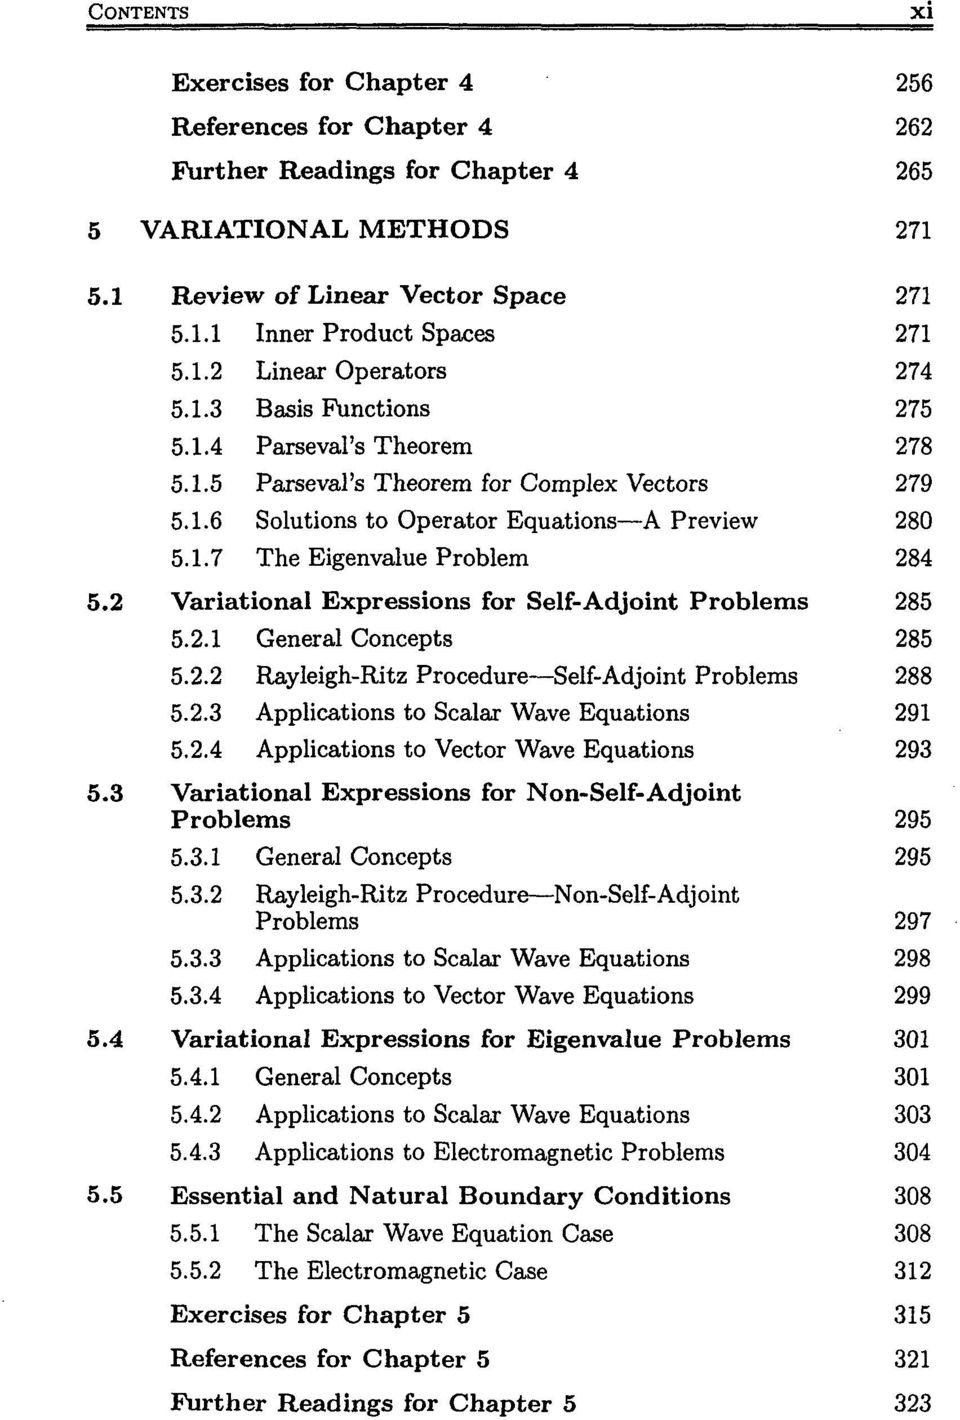 2 Variational Expressions for Self-Adjoint Problems 285 5.2.1 General Concepts 285 5.2.2 Rayleigh-Ritz Procedure Self-Adjoint Problems 288 5.2.3 Applications to Scalar Wave Equations 291 5.2.4 Applications to Vector Wave Equations 293 5.